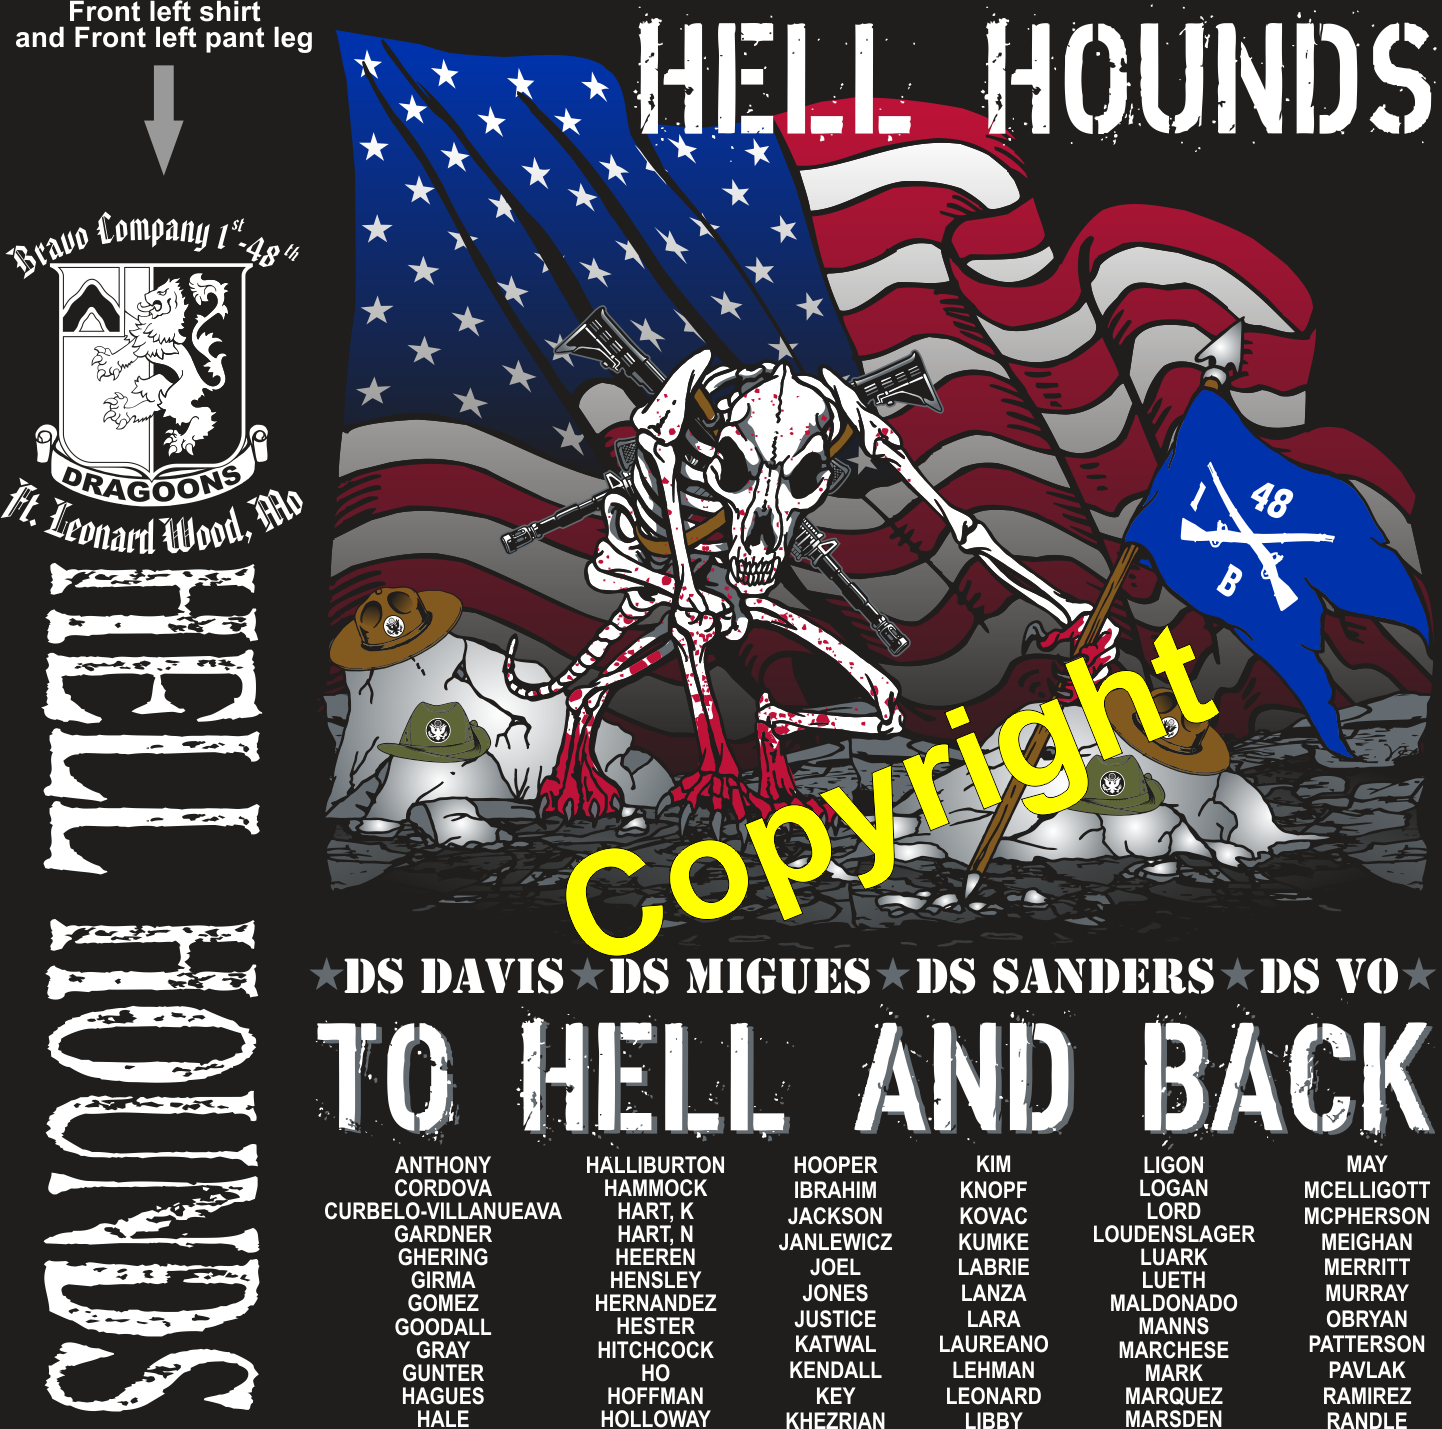 BRAVO 148 HELL HOUNDS GRADUATING DAY 7-18-2019 digital